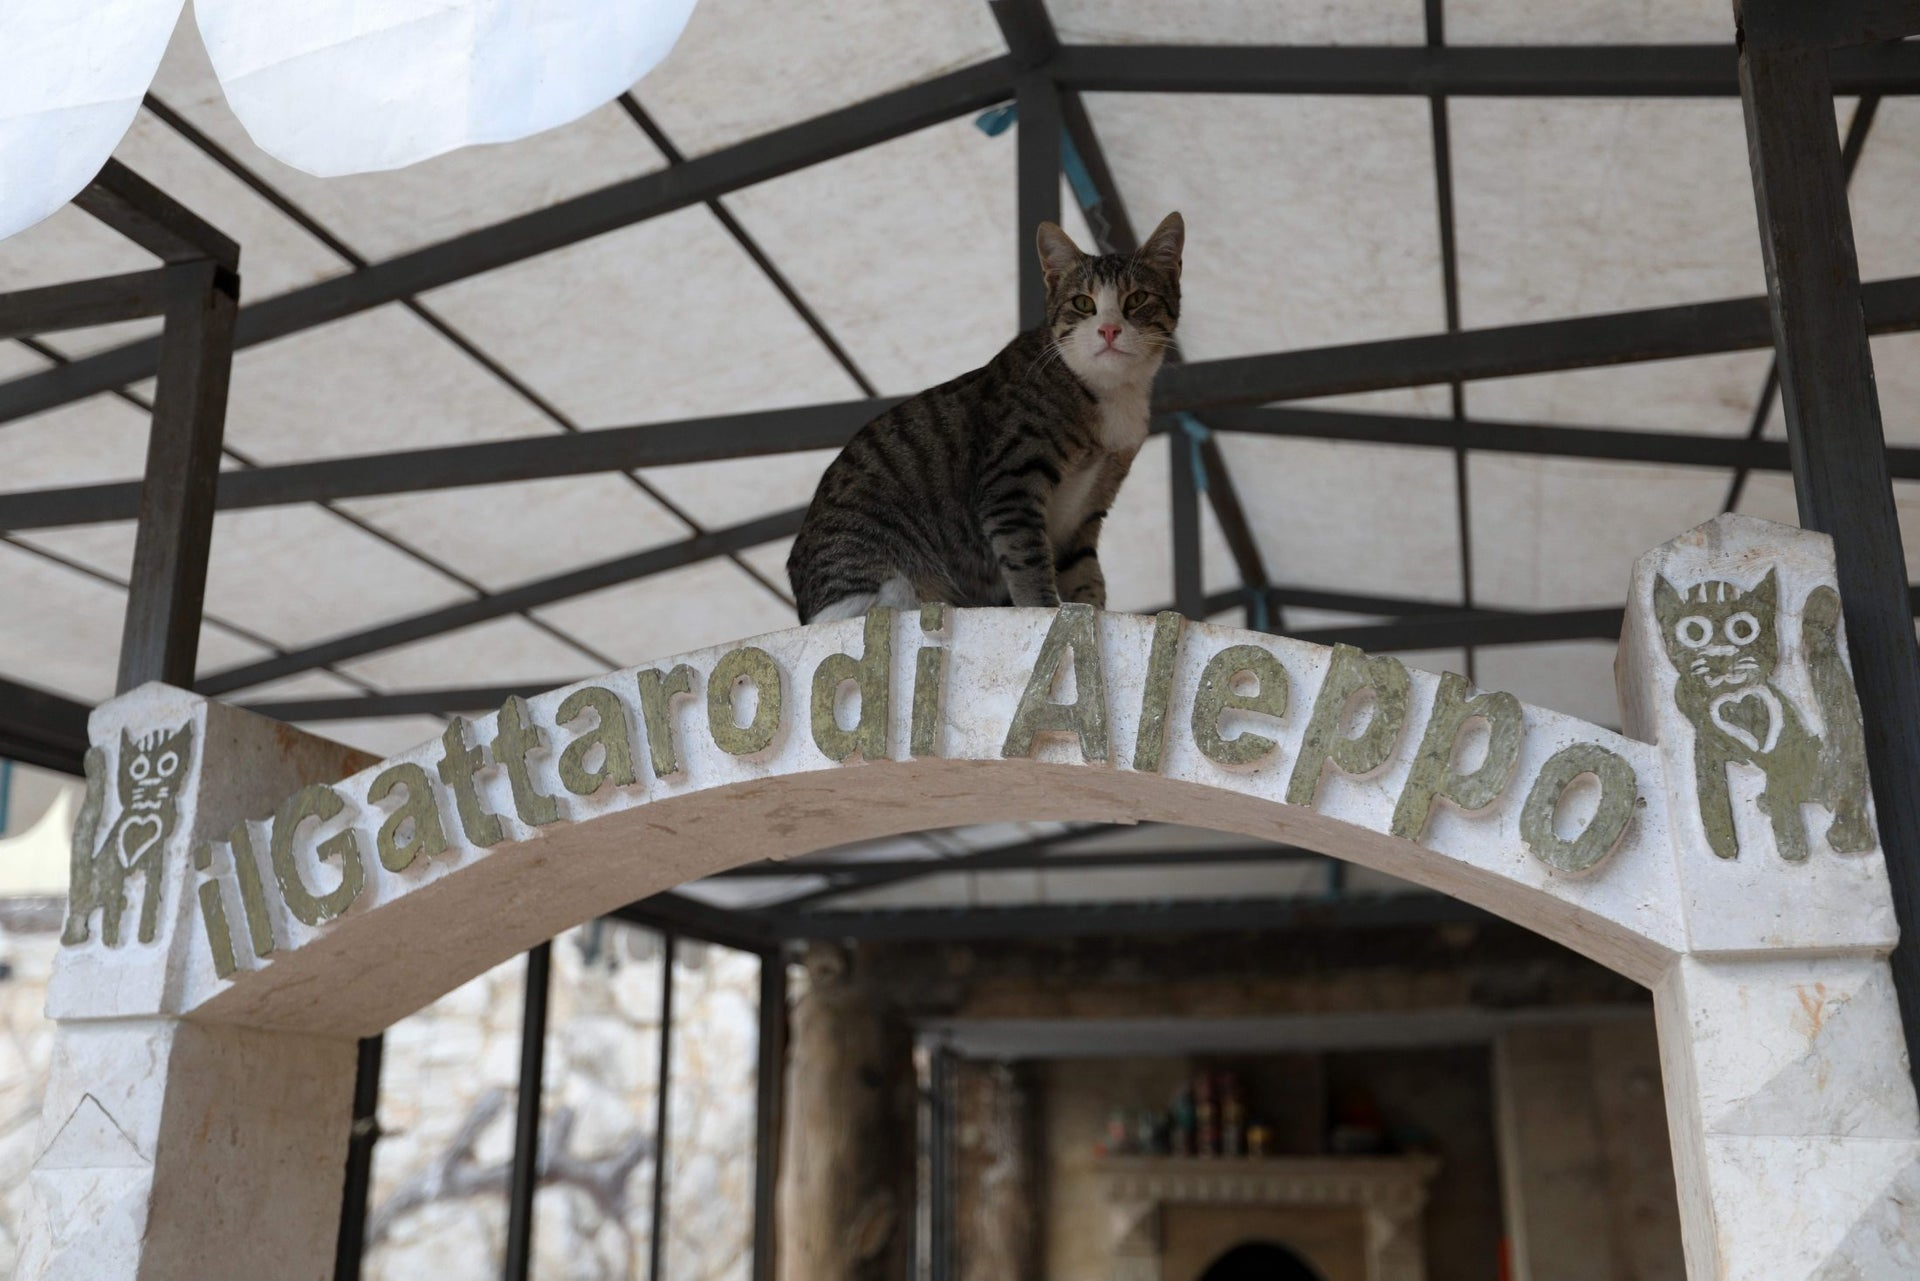 A cat sits at the entrance of the sleeping area of Ernesto's Cat Sanctuary in Kfar Naha, an opposition-held town in Aleppo province in Syria on March 17, 2018.